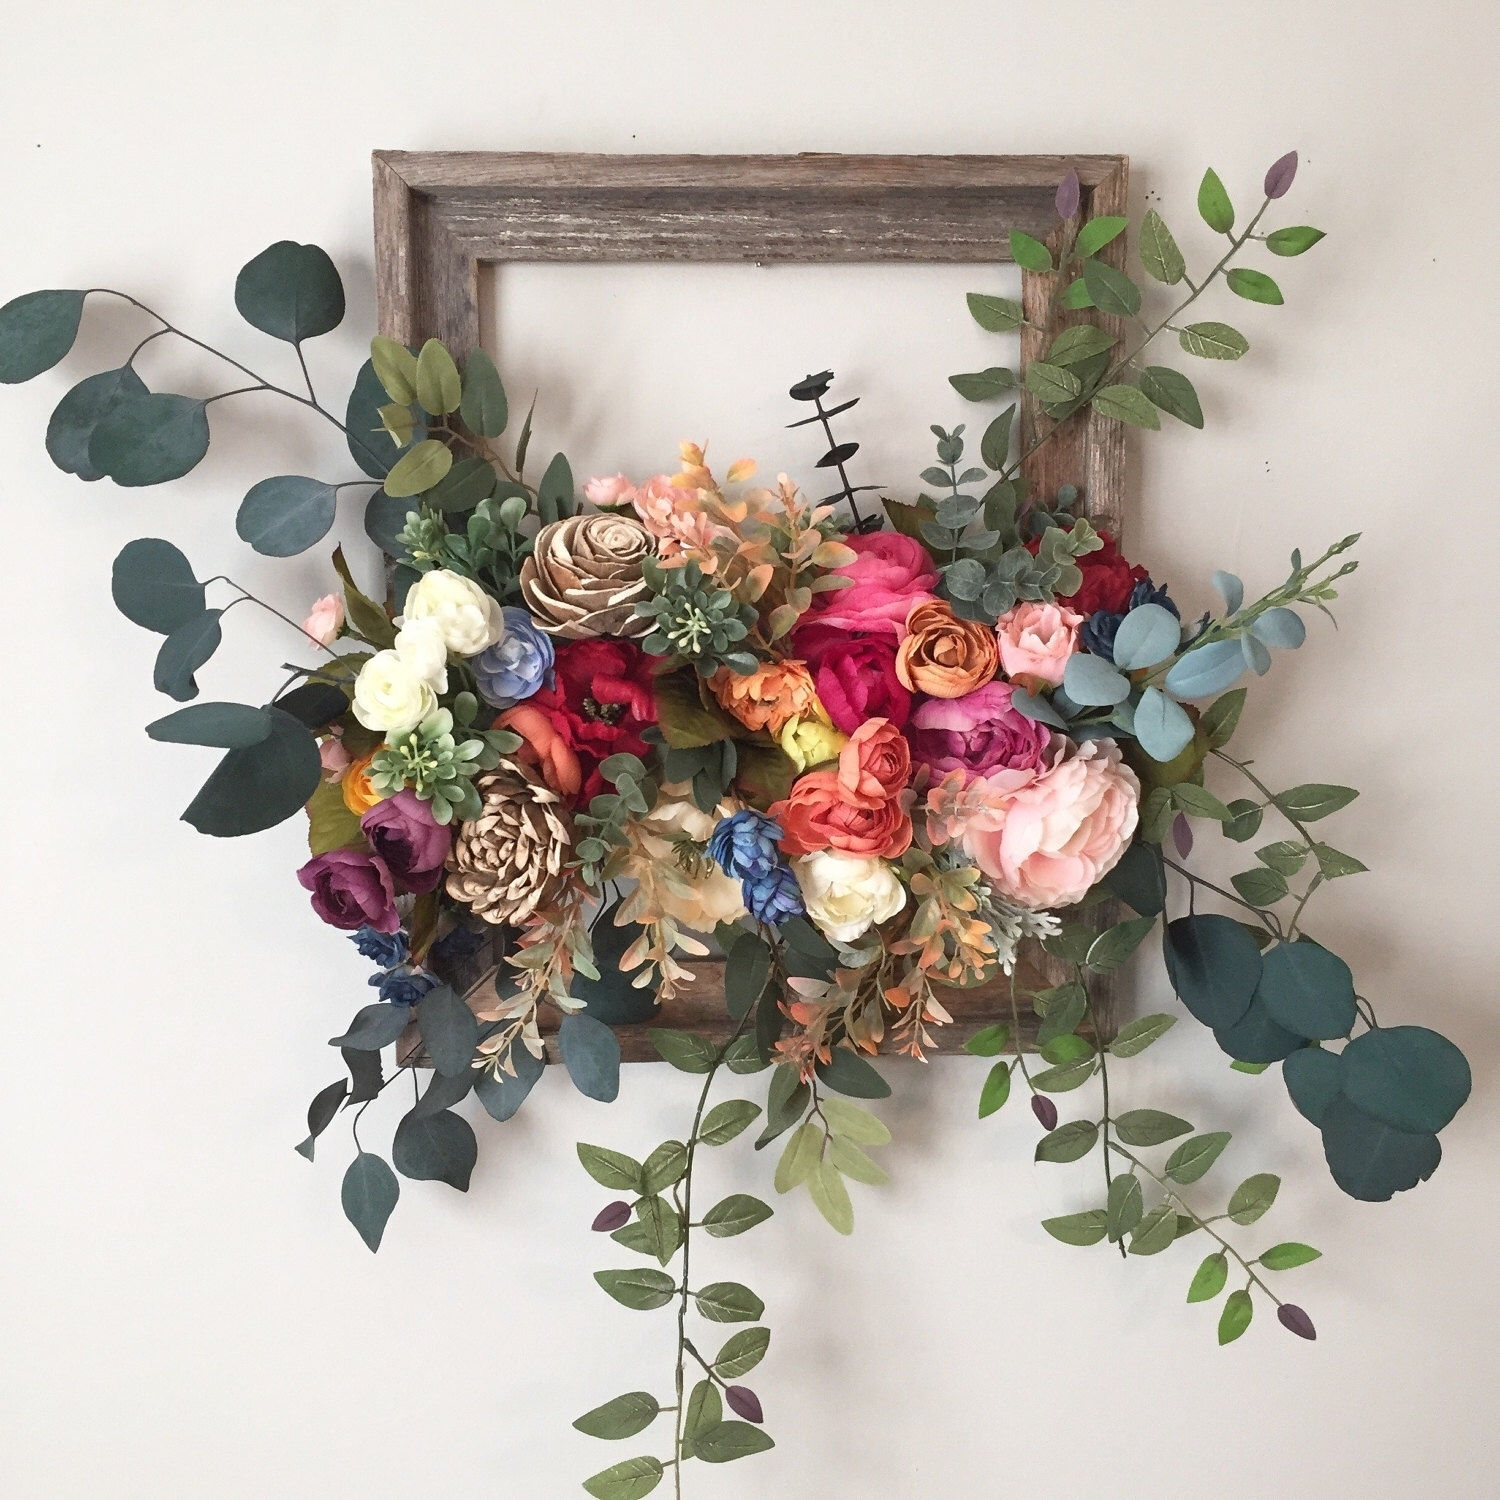 Unique Wall Hanging Flower Design | Wall Decorations Intended For 2018 Floral Wall Art (View 17 of 20)